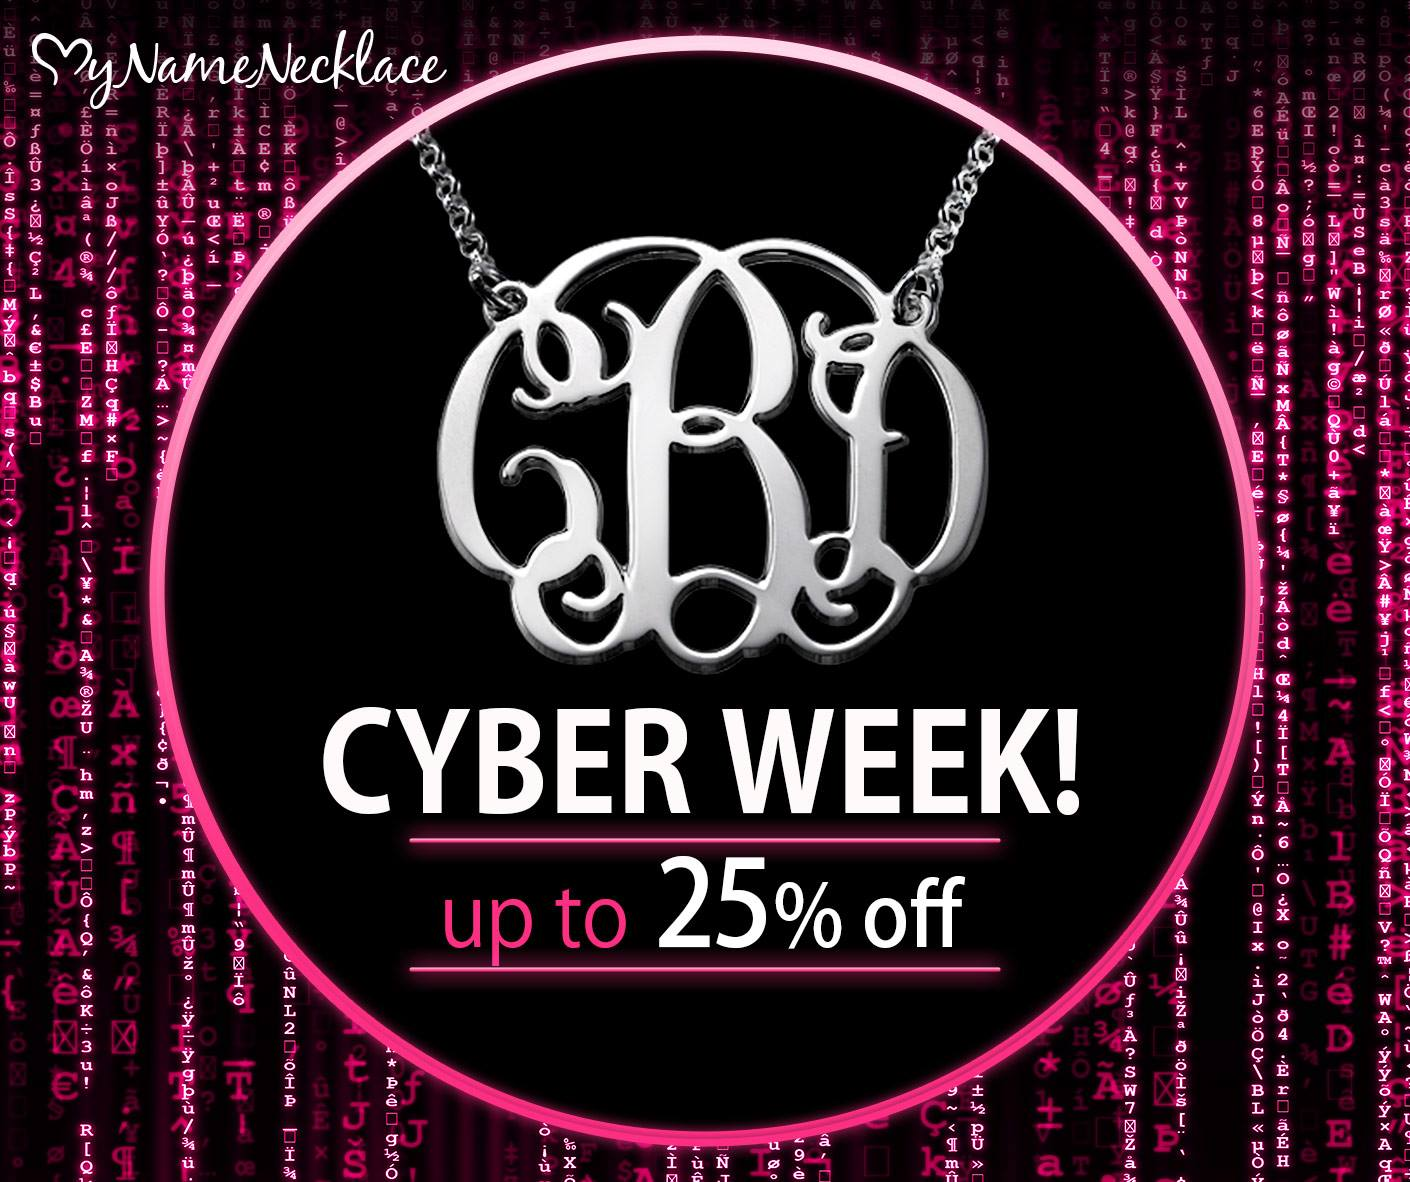 Cyber Week Sale at MyNameNecklace